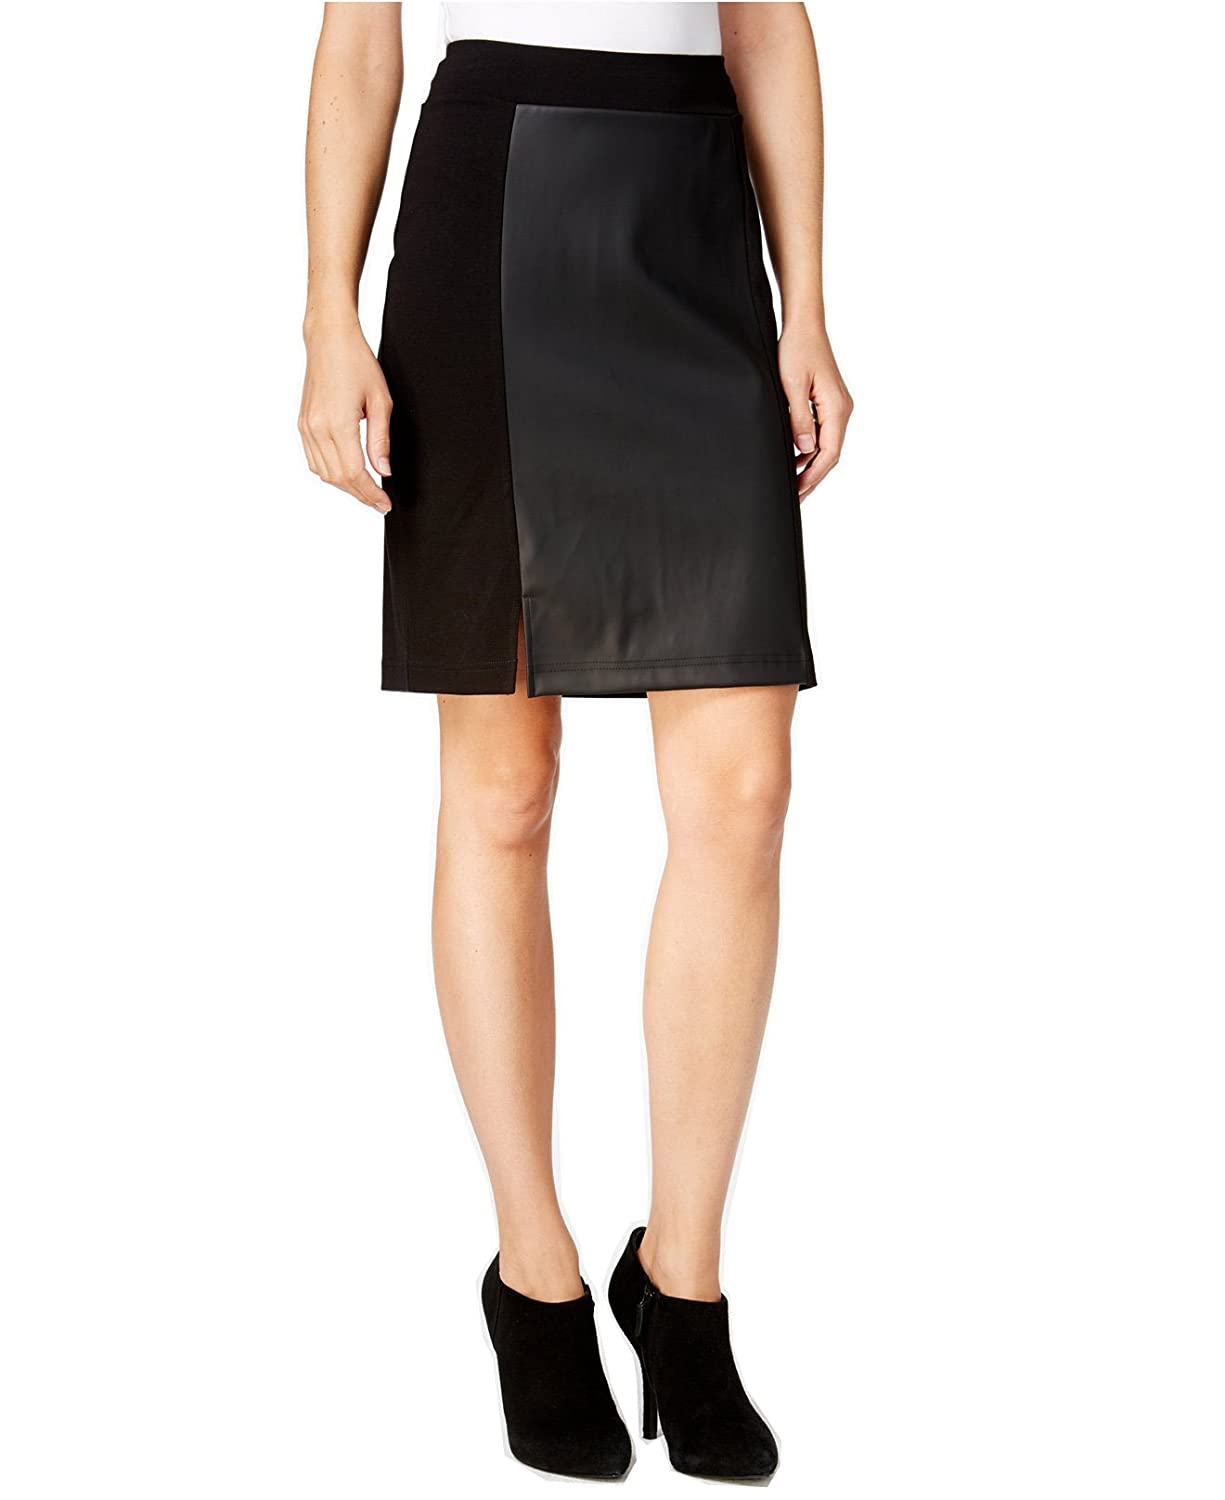 Kensie Women's Faux-Leather Ponte Skirt